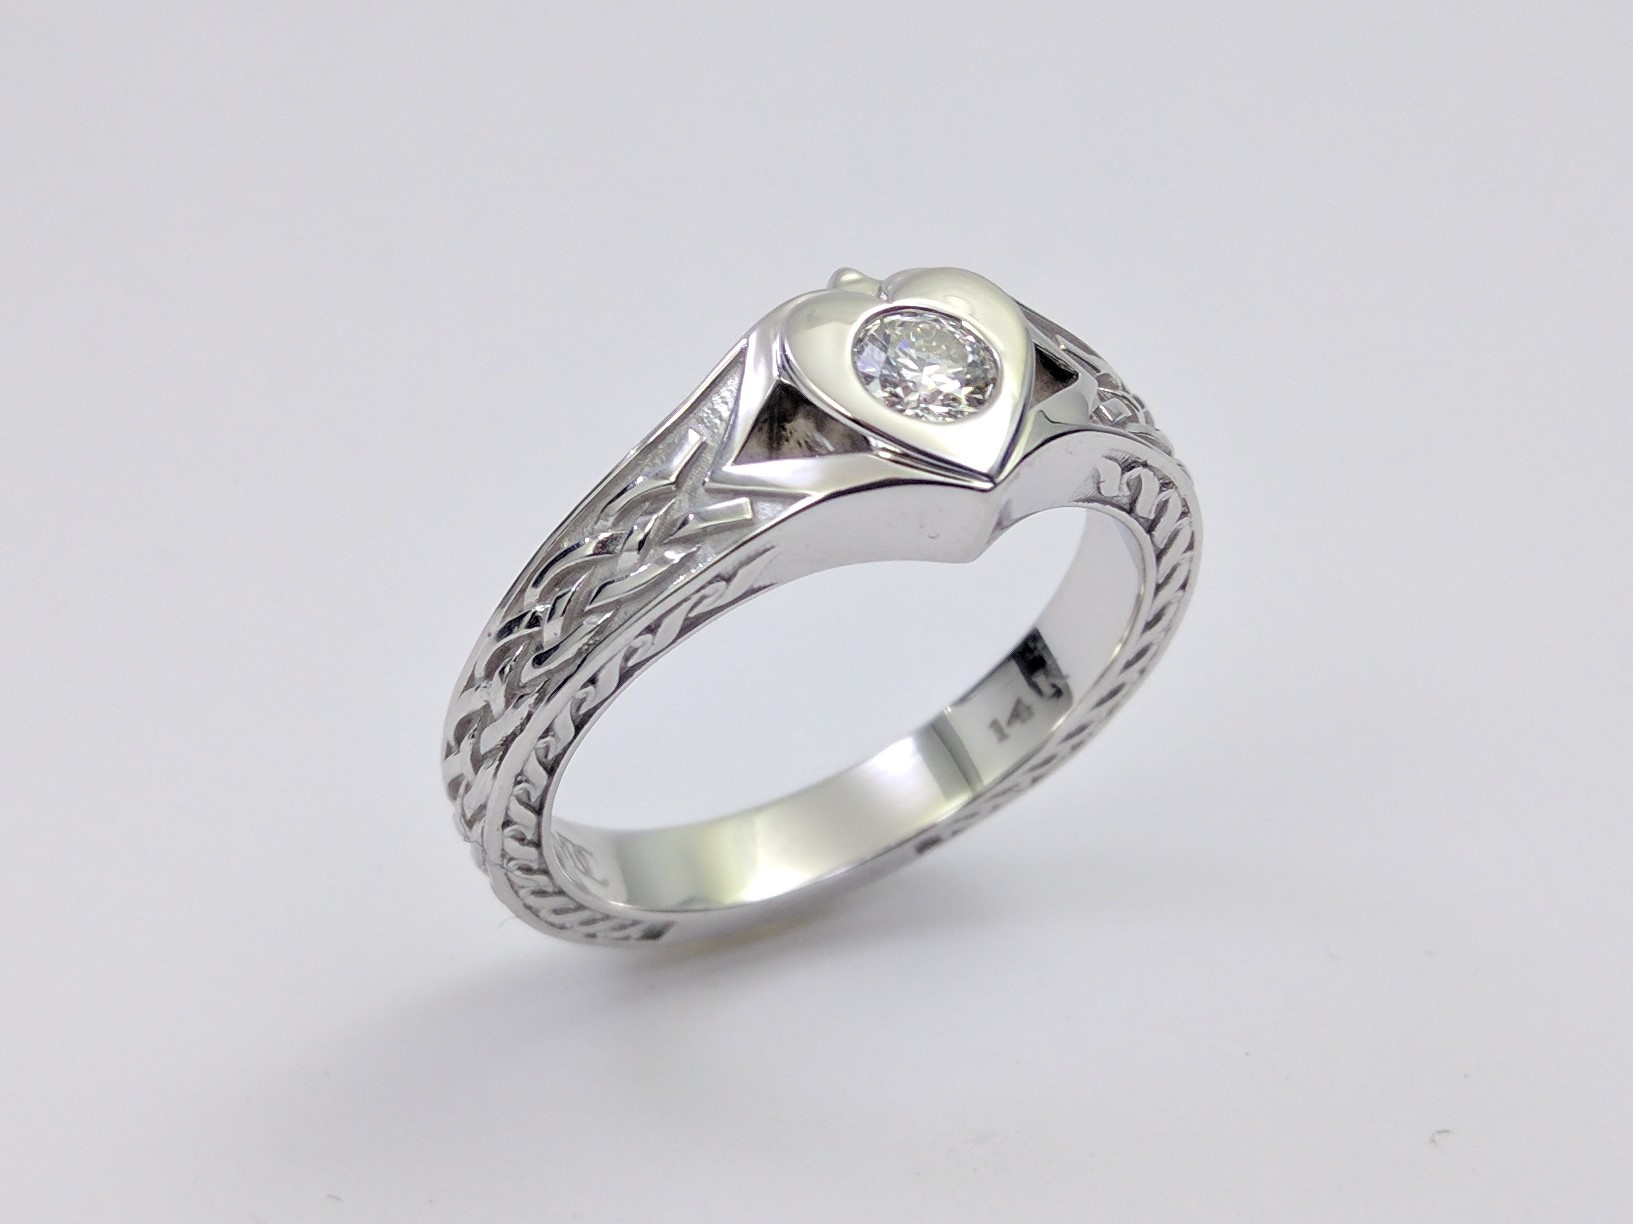 gaelic luxury celtic rings wedding designs